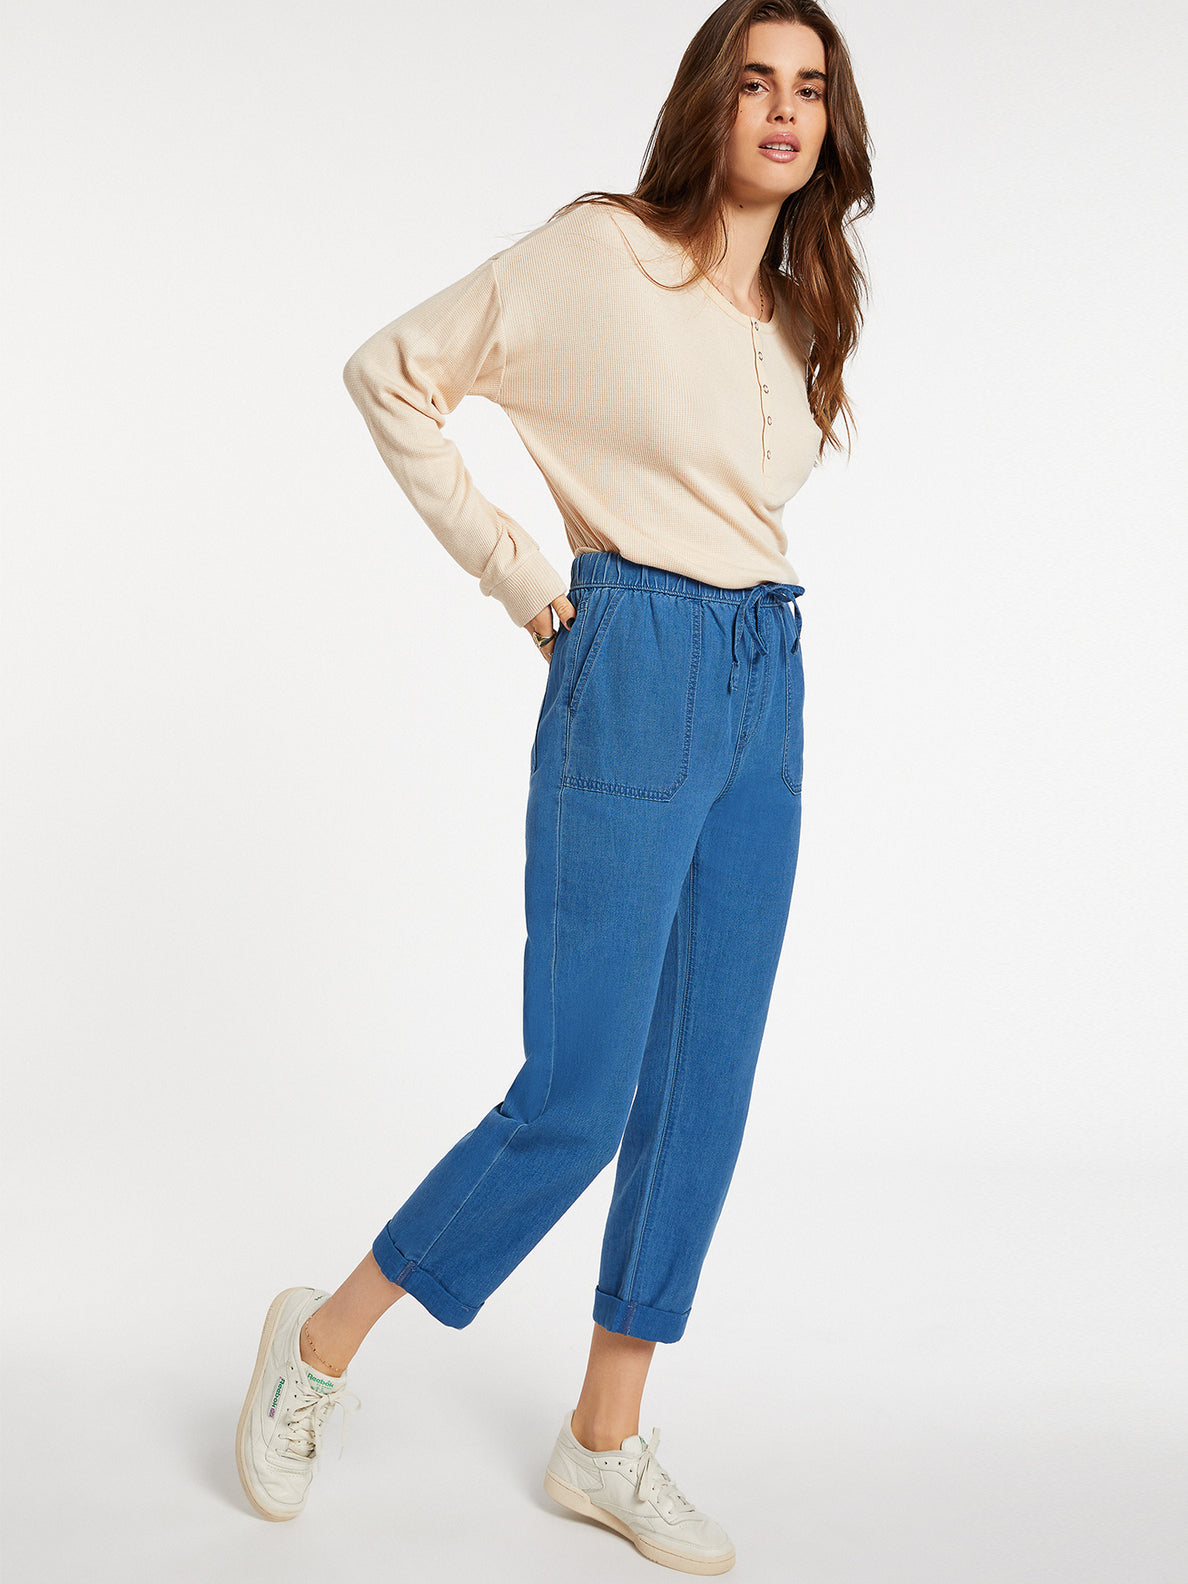 Sunday Strut Pant Airforce Blue (B1232006_AFB) [4]